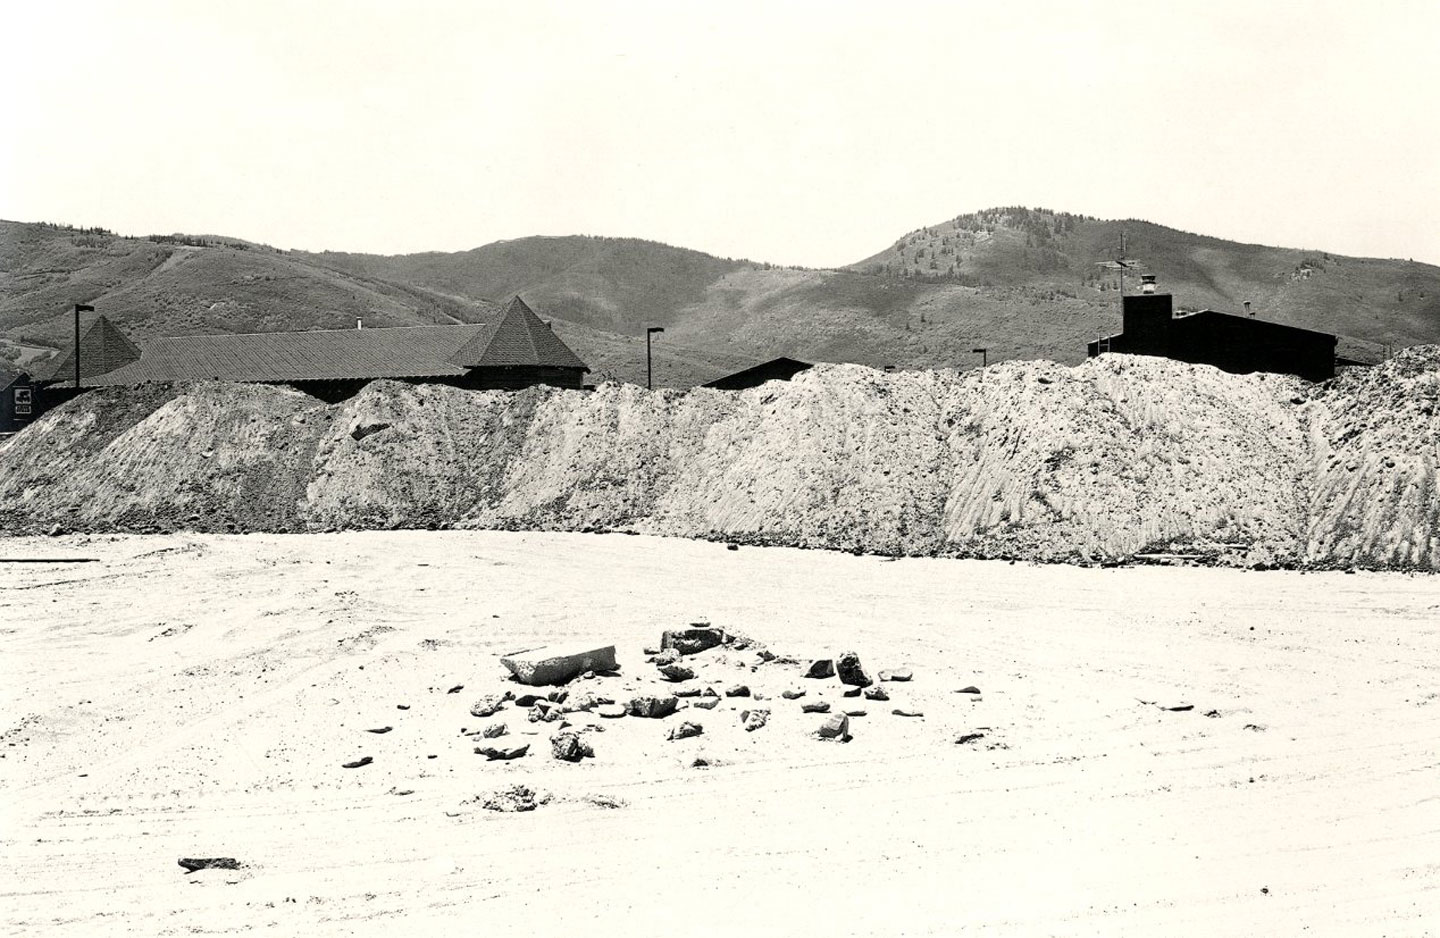 Lewis Baltz: Park City (First Edition) [SIGNED] (in publisher's shrink-wrap, slit open for signature) [IMPERFECT]